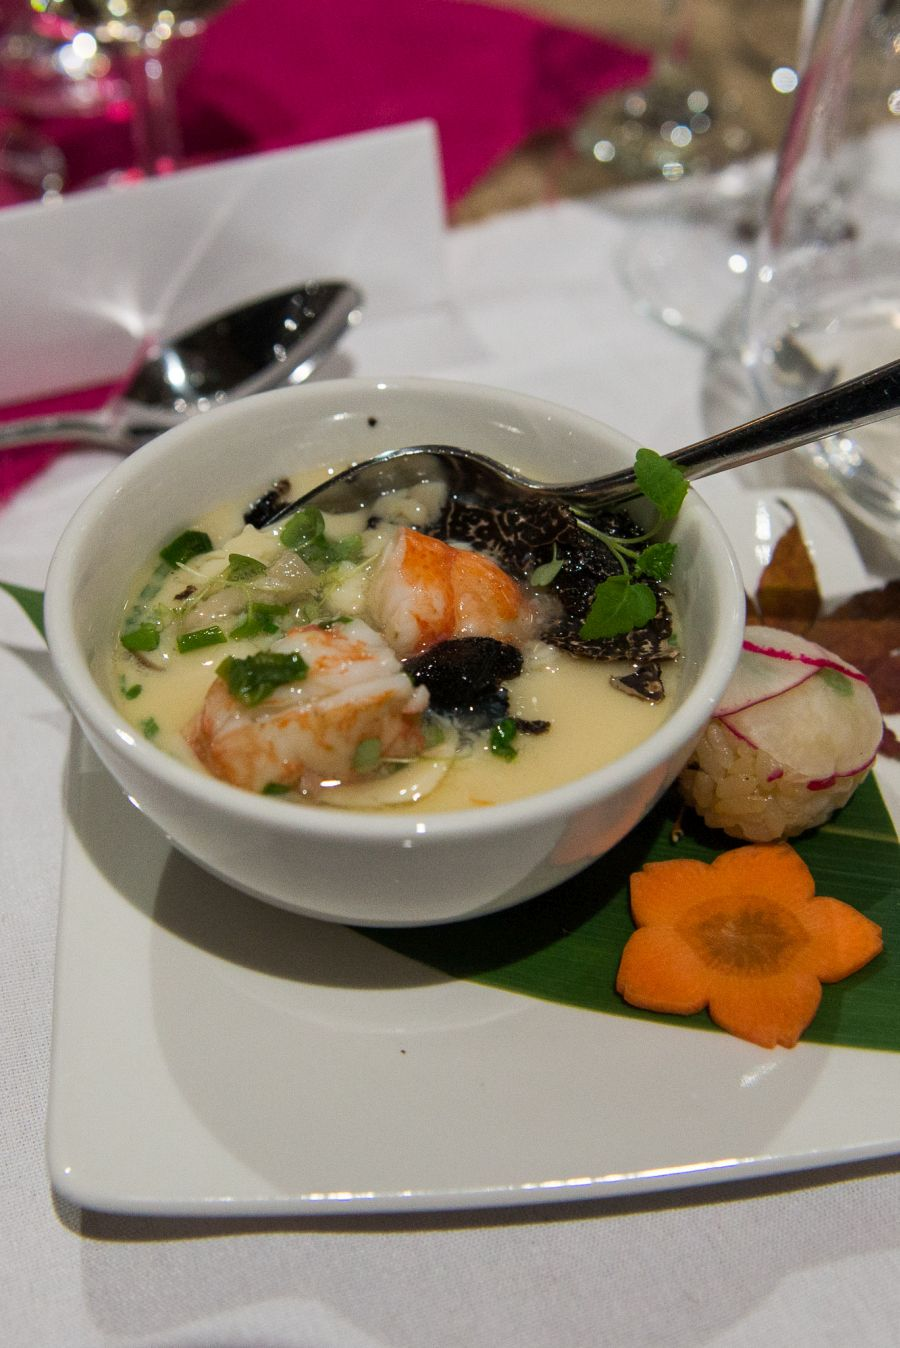 Marron, mushrooms and truffle in the chawan-mushi